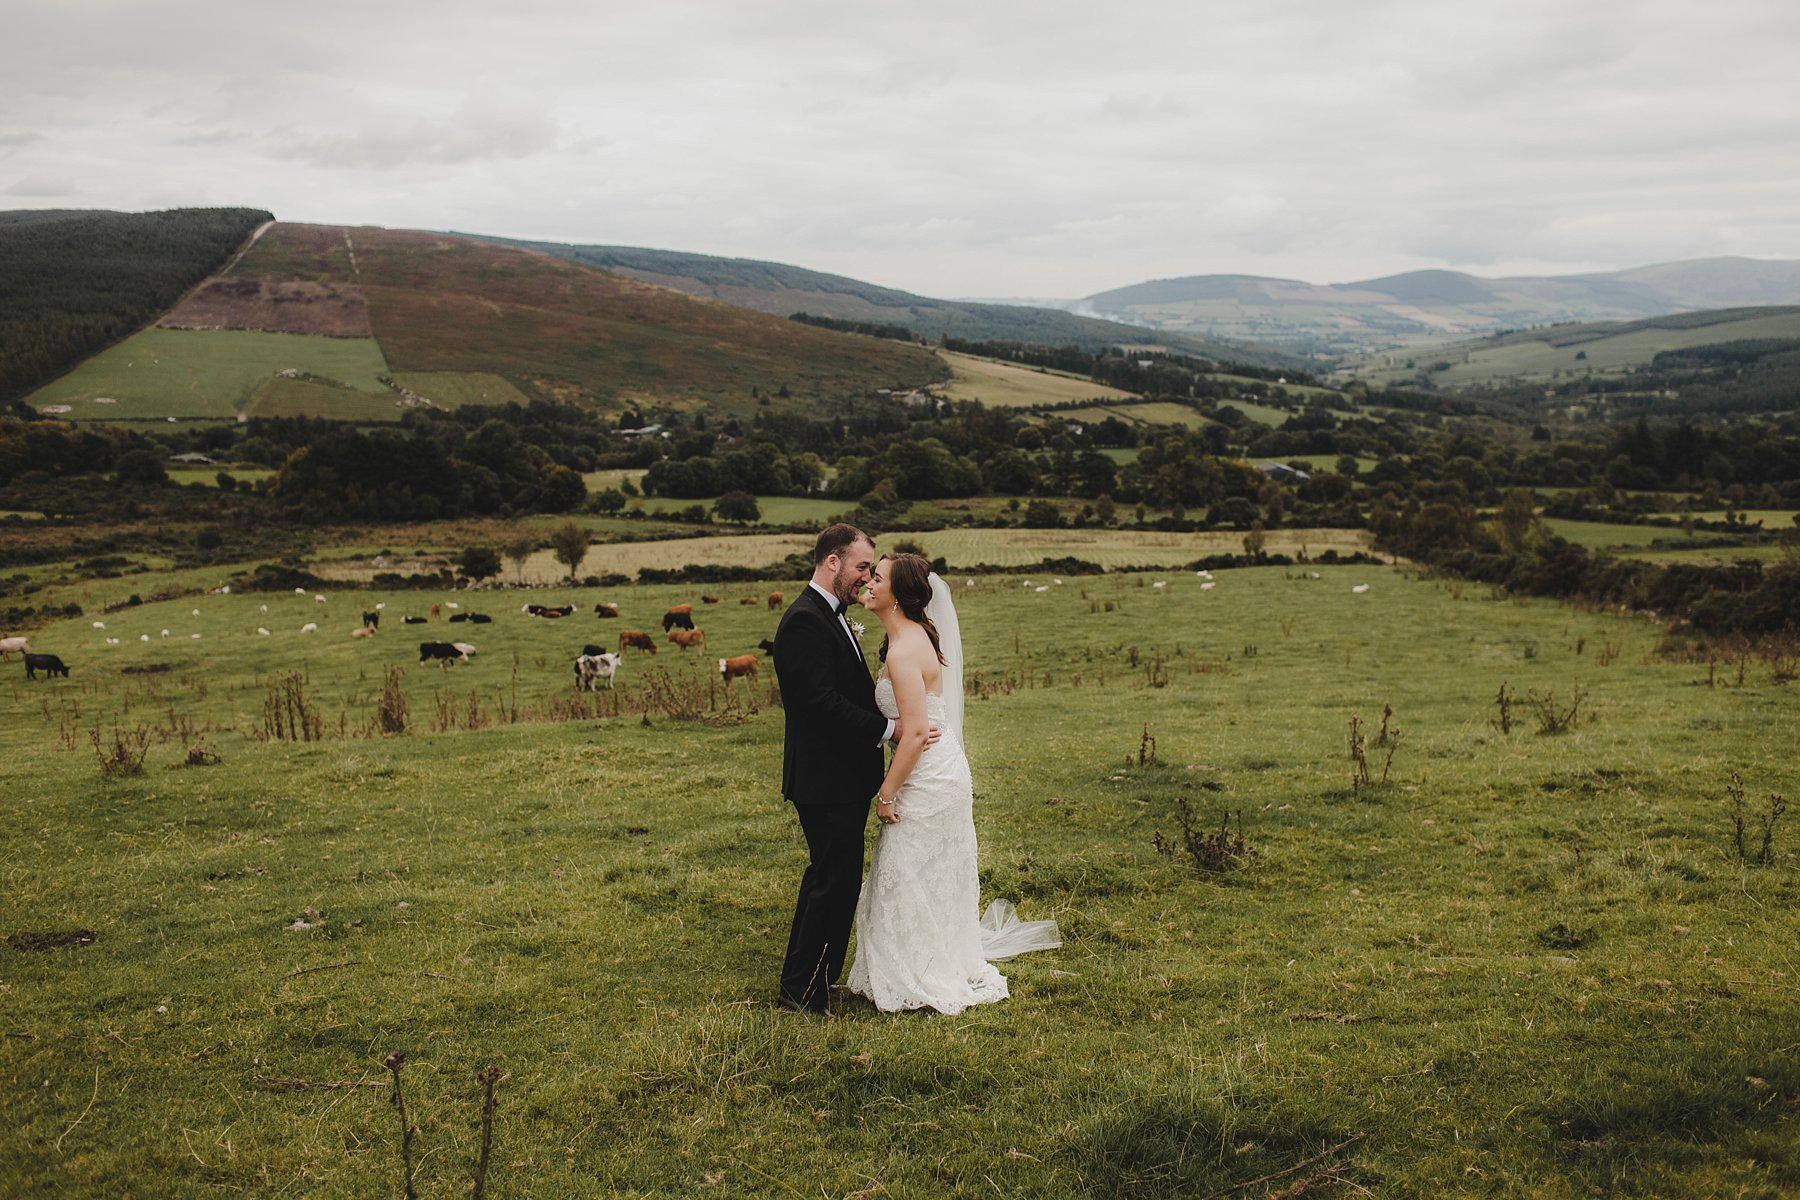 brooklodge_ireland_wicklow_weddings_0043